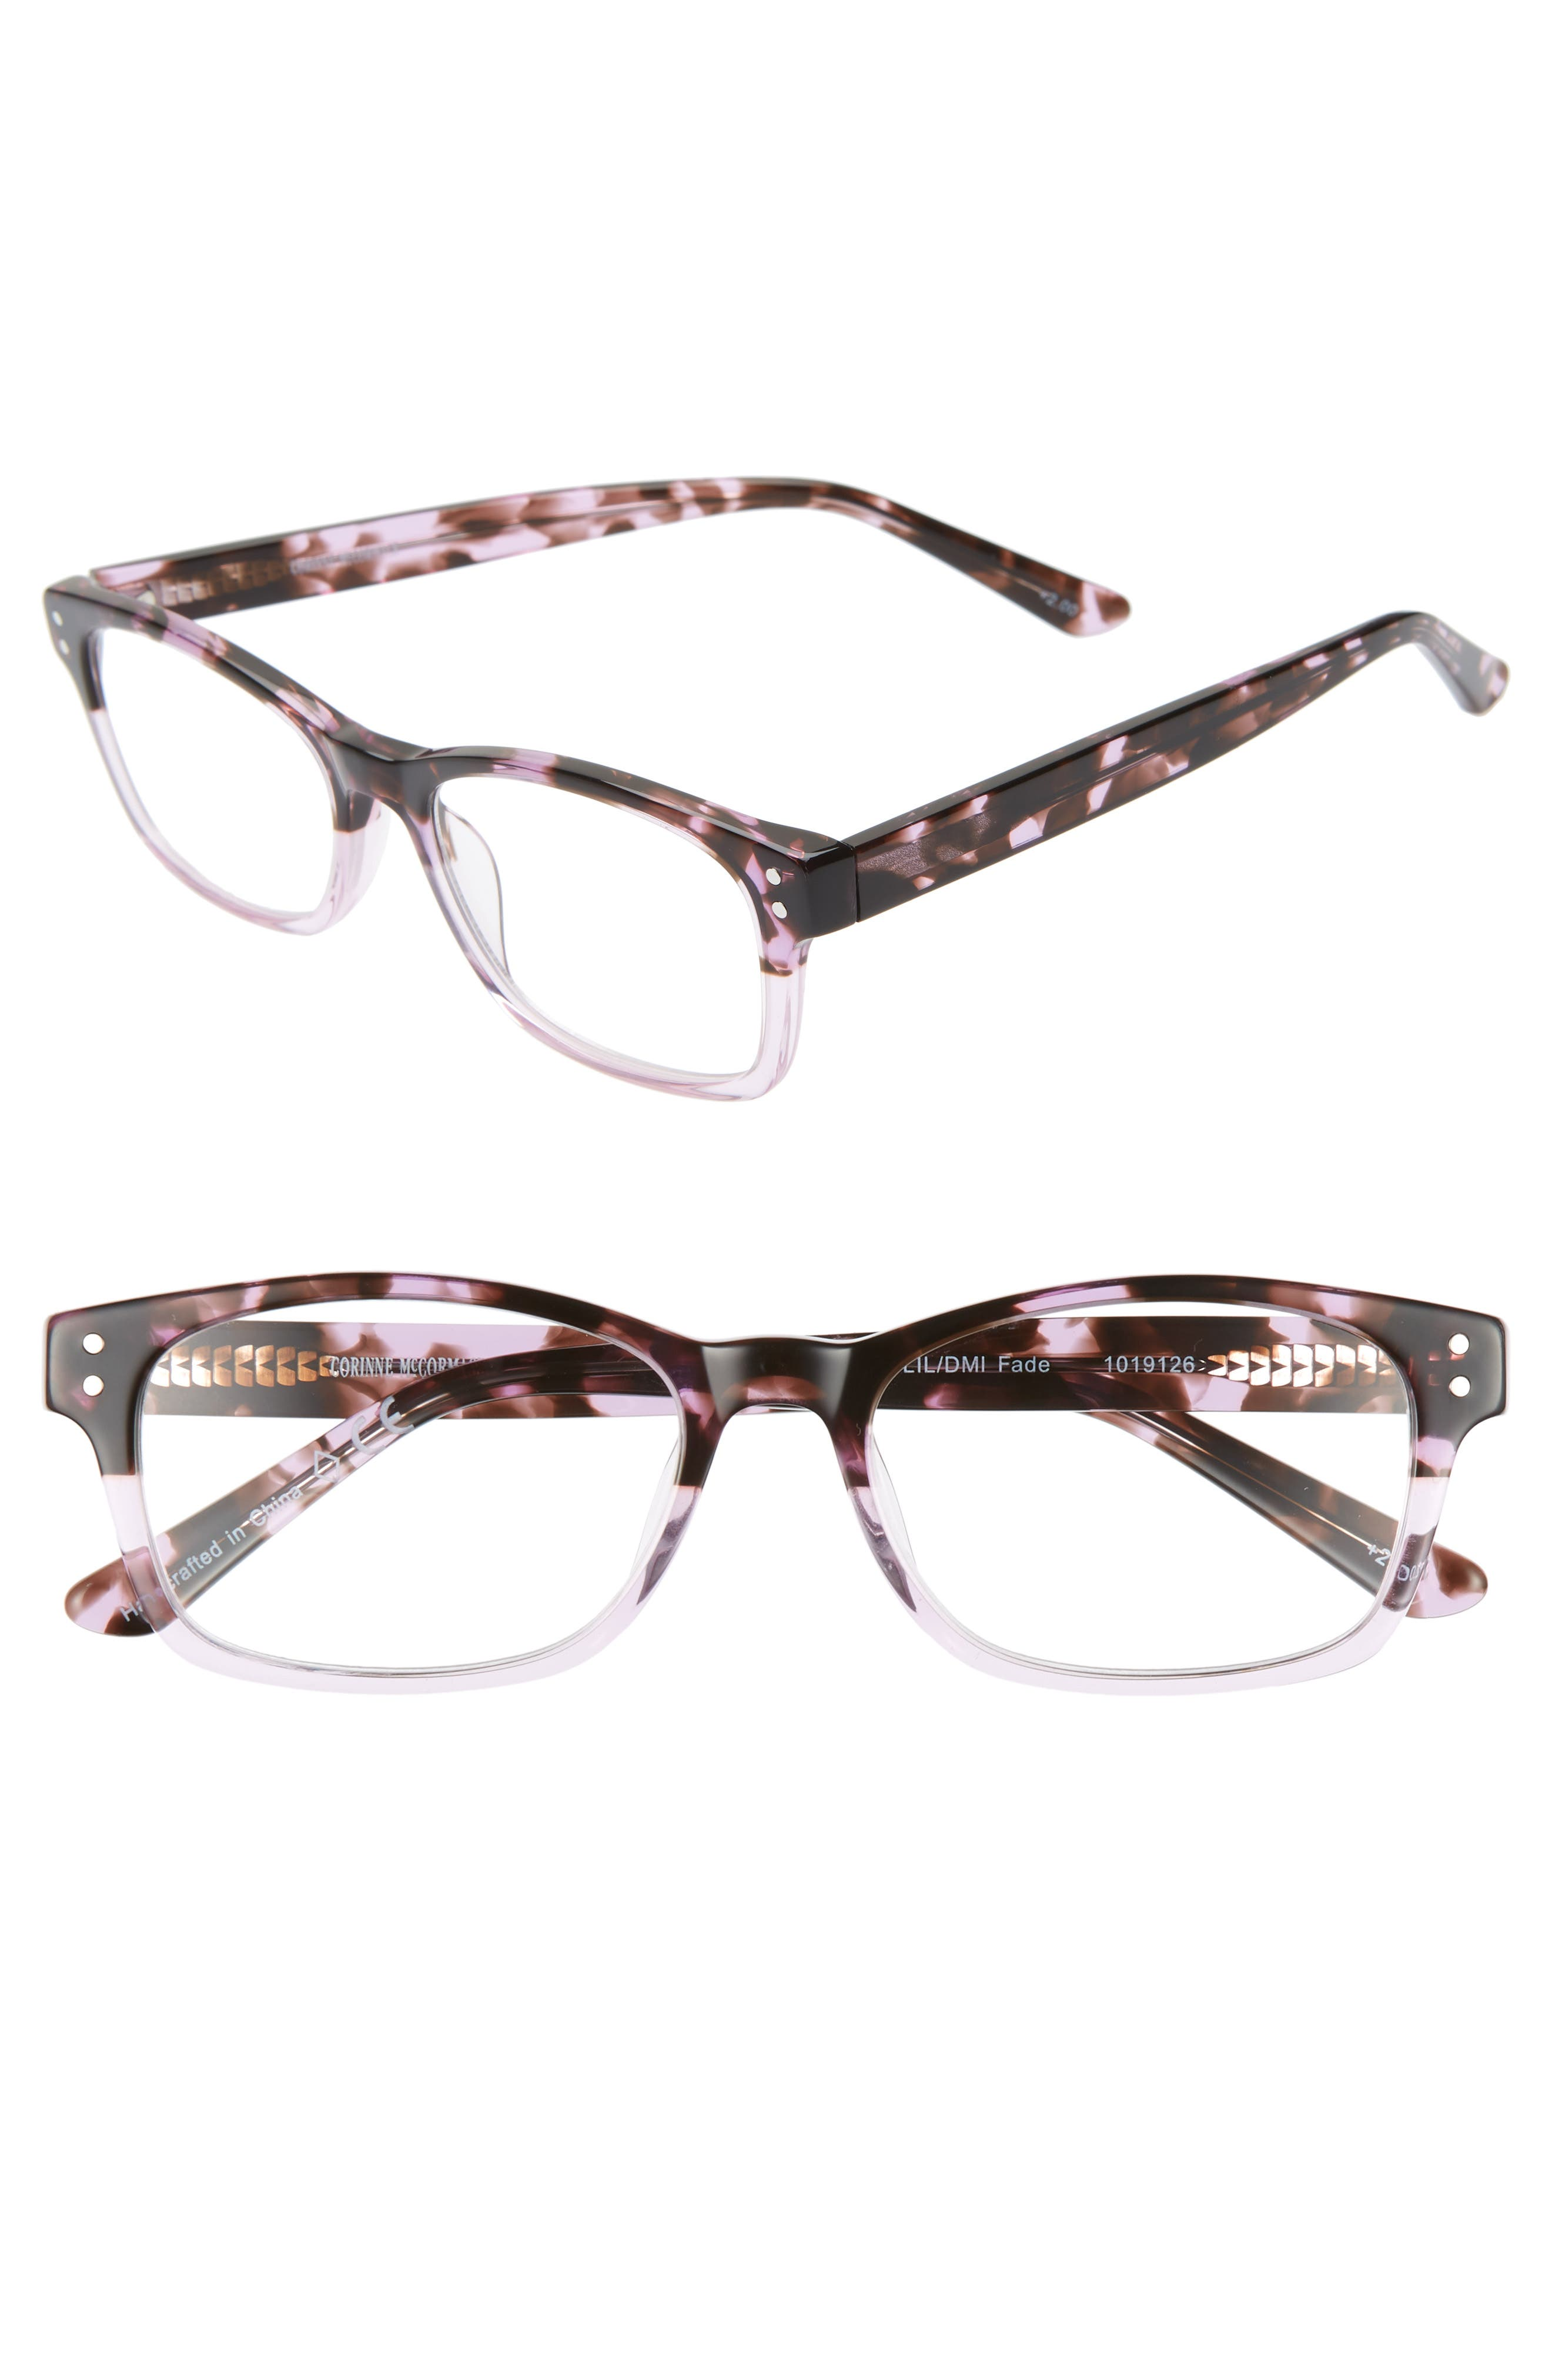 CORINNE MCCORMACK Edie 52Mm Reading Glasses in Lilac Demi Fade